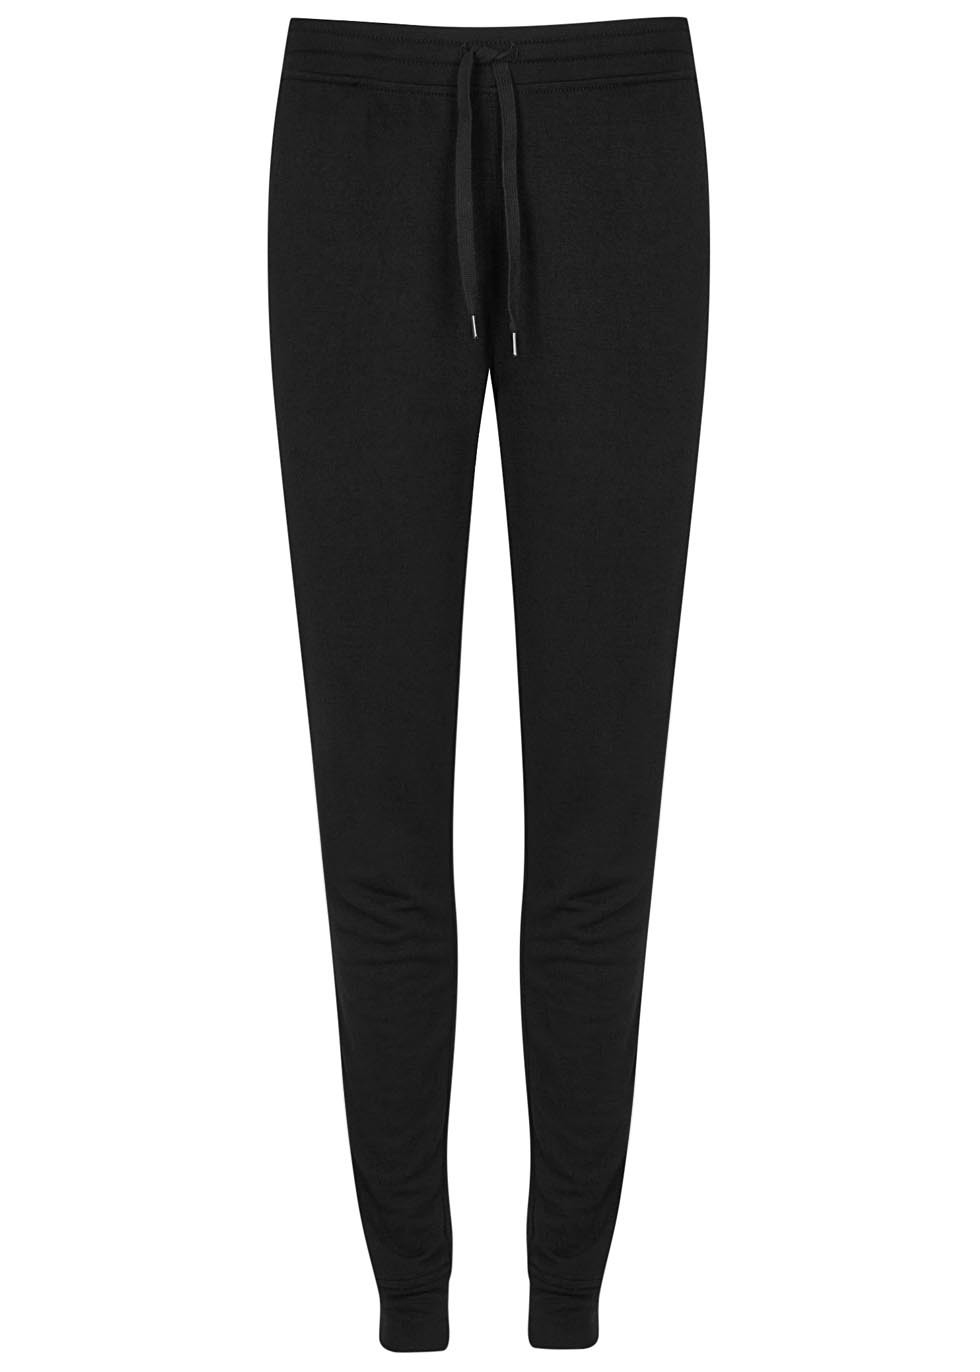 Black Washed Terry Jogging Trousers - length: standard; pattern: plain; style: tracksuit pants; waist detail: elasticated waist; waist: mid/regular rise; predominant colour: black; occasions: casual; fibres: polyester/polyamide - mix; fit: tapered; pattern type: fabric; texture group: jersey - stretchy/drapey; season: s/s 2016; wardrobe: basic